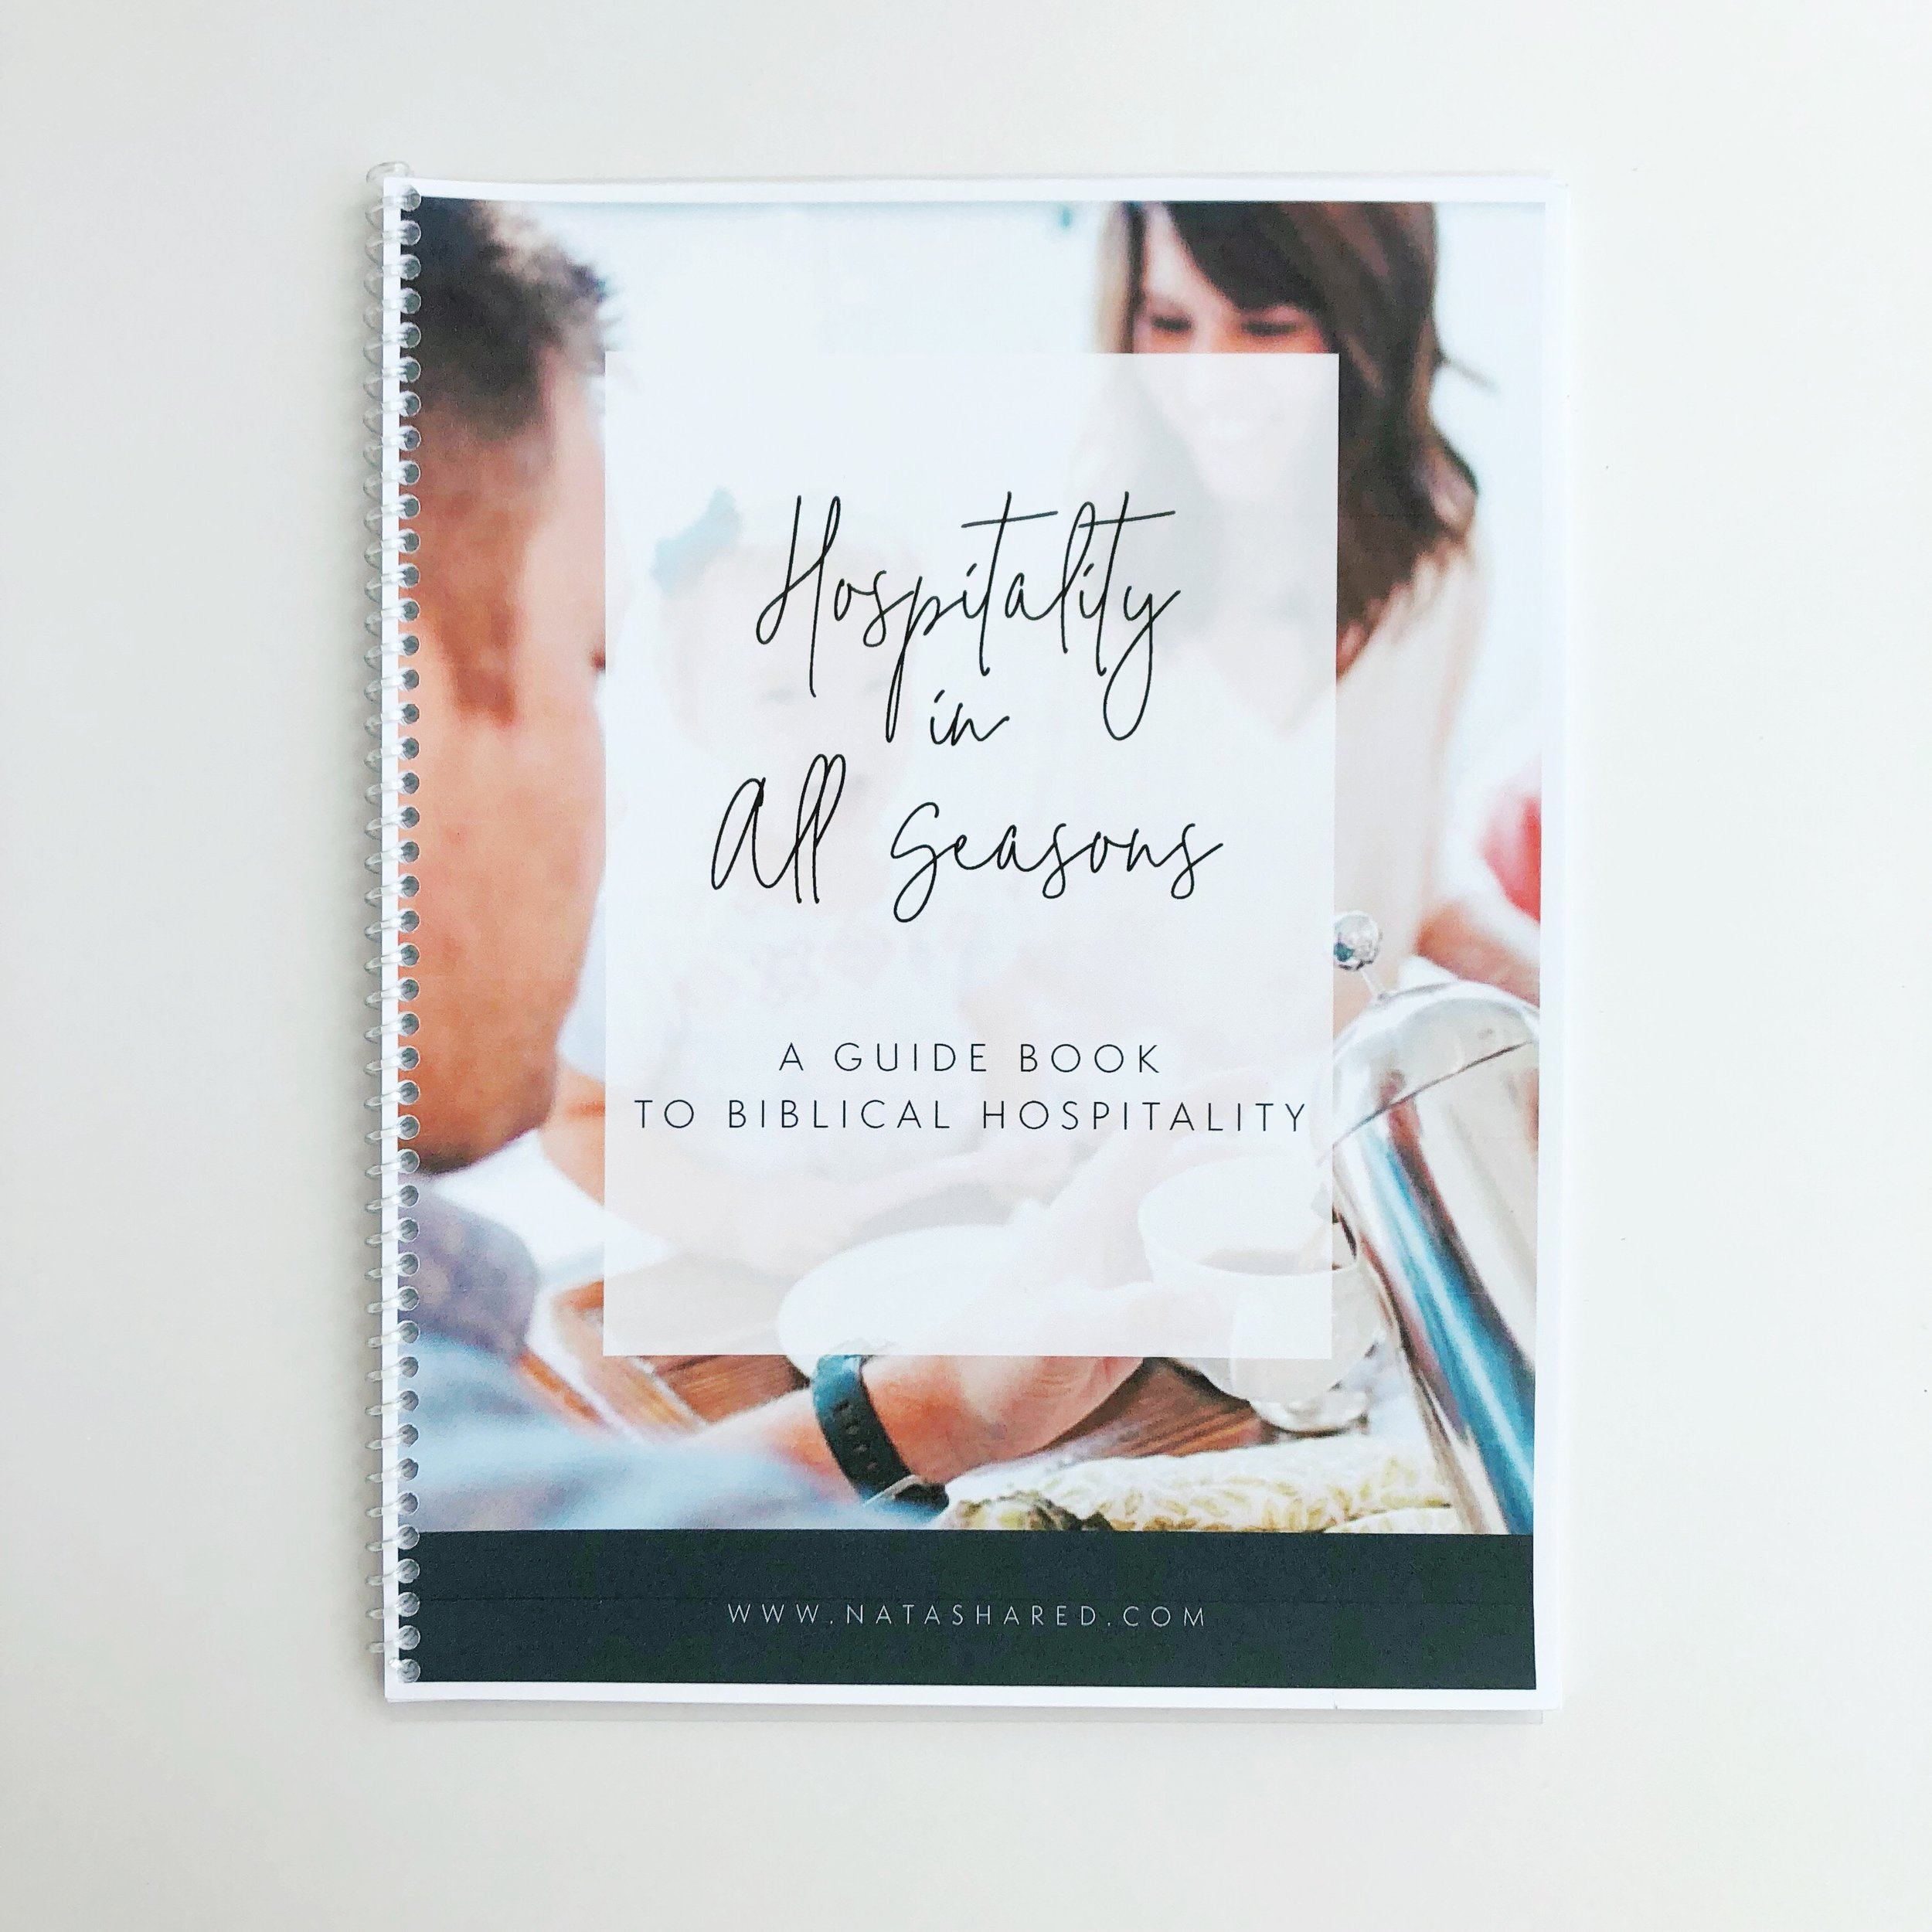 Hospitality in All Seasons - Guidebook to Biblical Hospitality